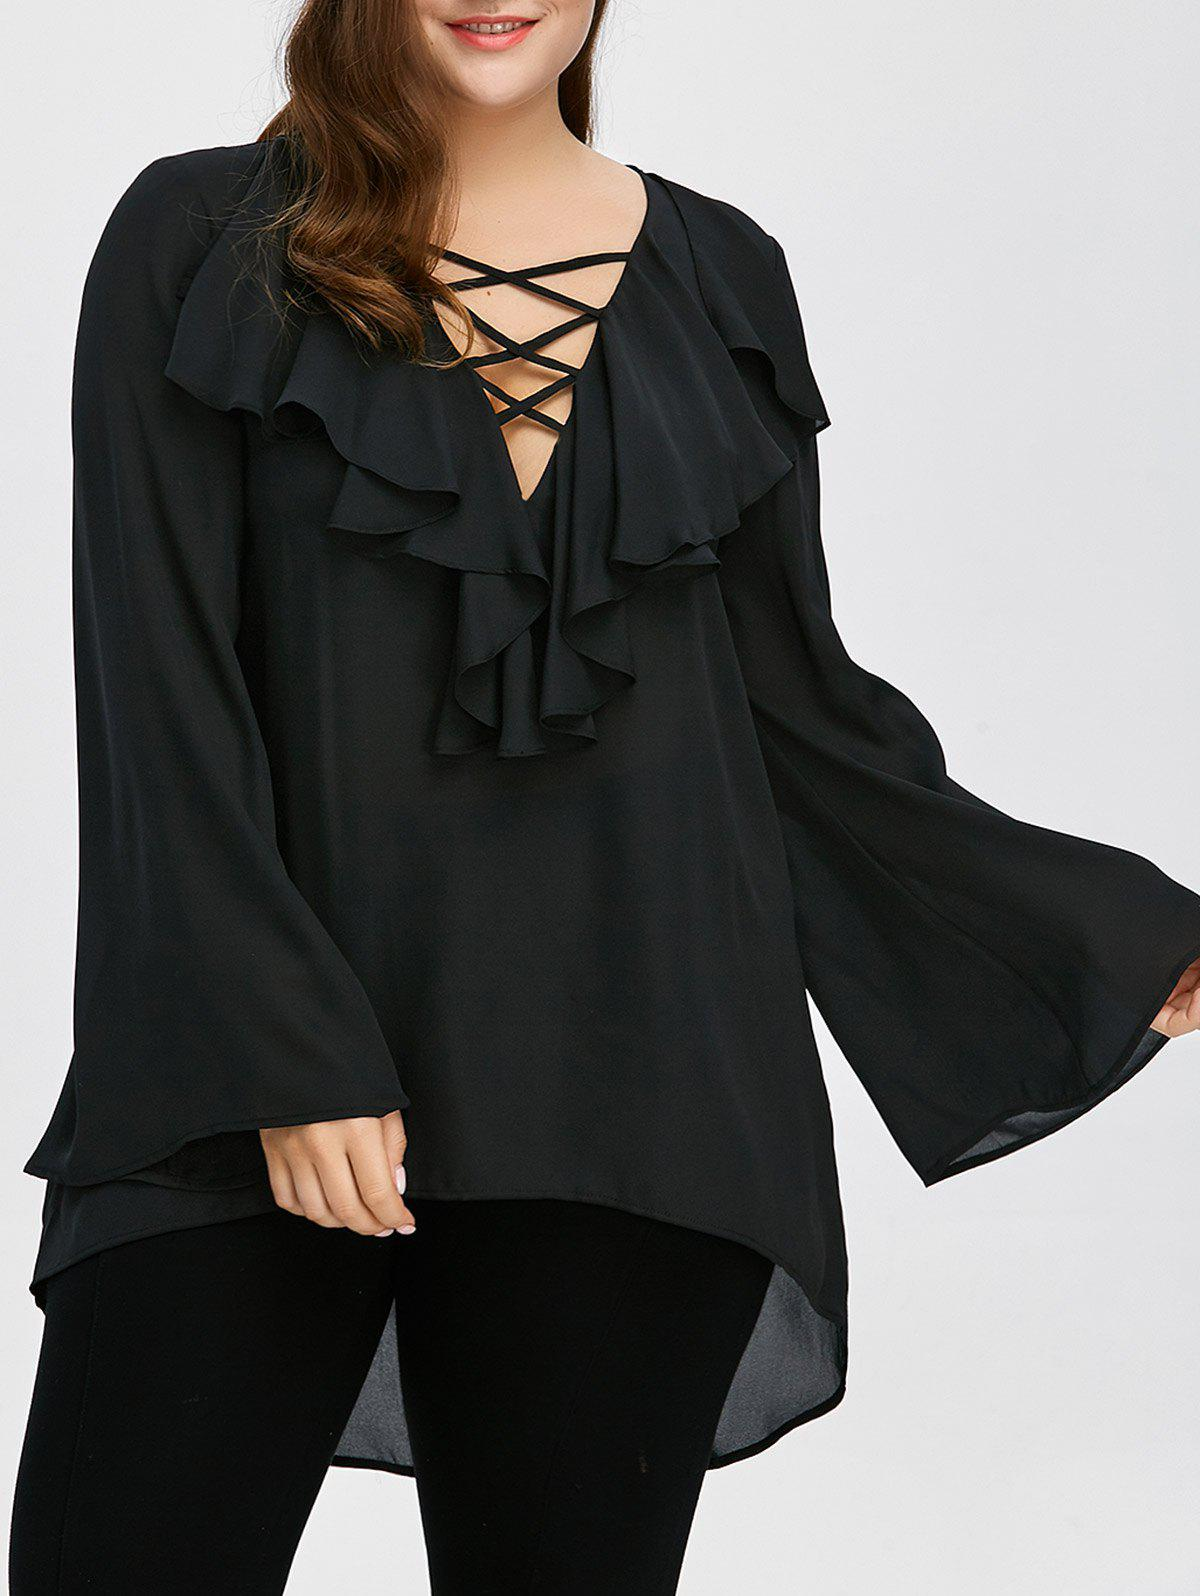 Plus Size Ruffle Front Long Flare Sleeve Lace Up BlouseWOMEN<br><br>Size: 5XL; Color: BLACK; Material: Polyester; Shirt Length: Long; Sleeve Length: Full; Collar: Plunging Neck; Style: Casual; Season: Fall,Spring,Summer; Pattern Type: Solid; Weight: 0.3400kg; Package Contents: 1 x Blouse;